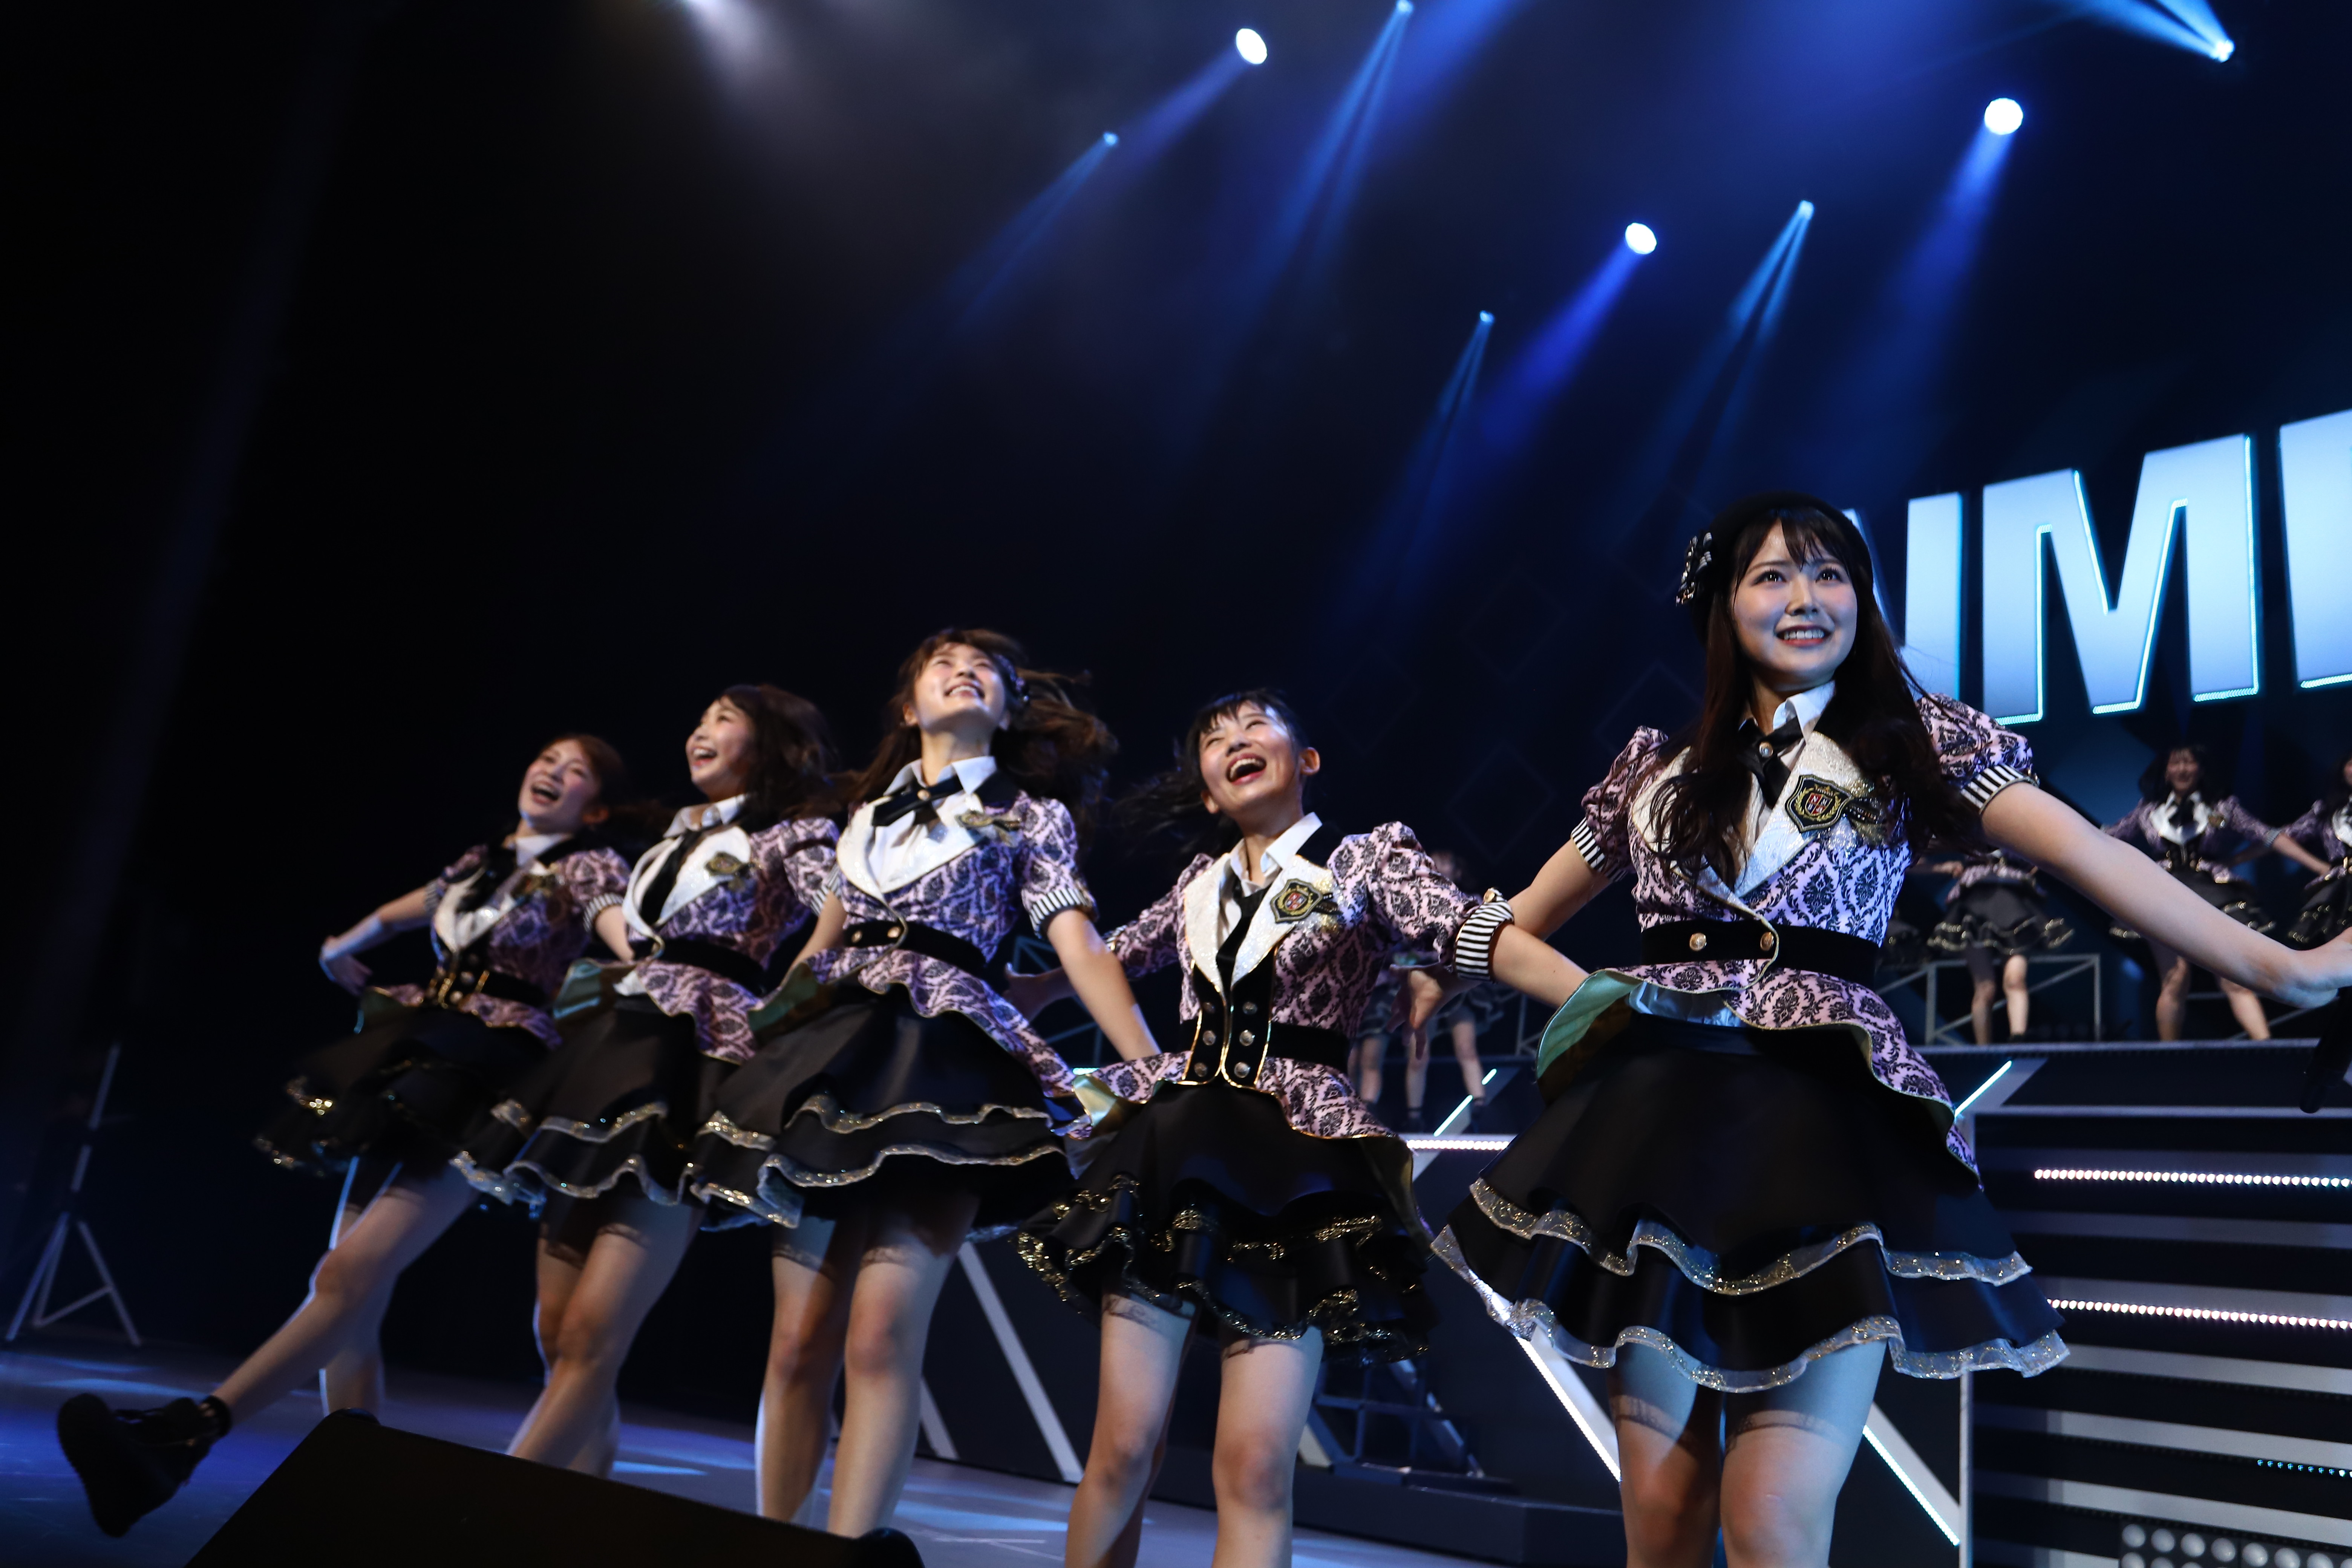 NMB48 LIVE TOUR 2018 名古屋 チームM公演-169